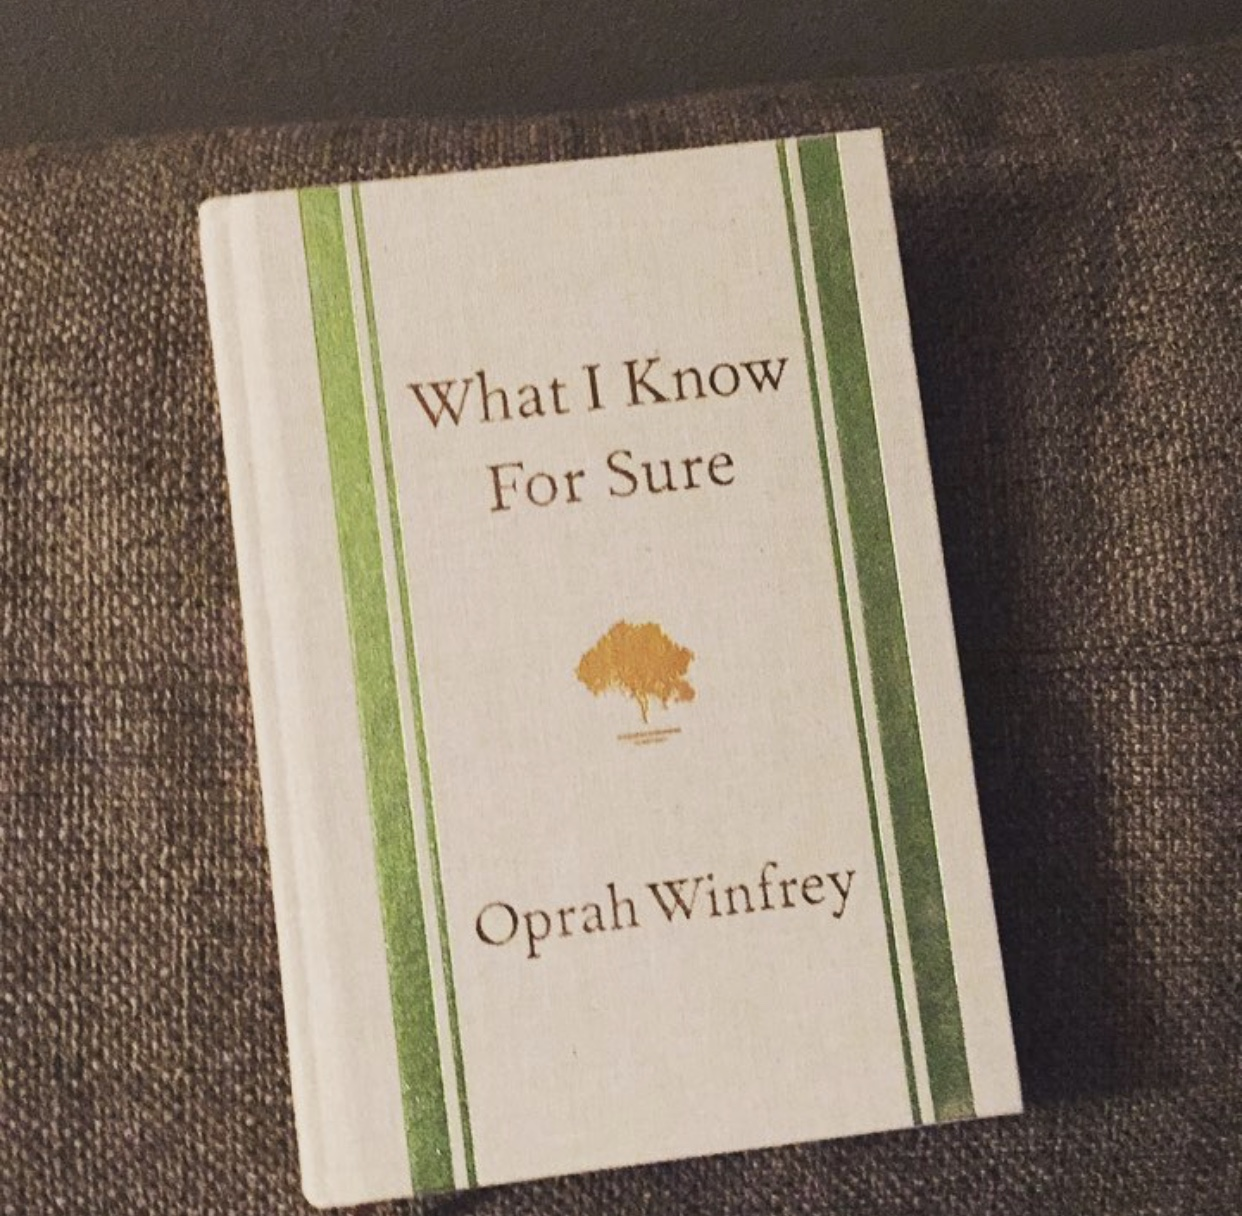 What I know For Sure - By Oprah Winfrey:  I was craving some inspiration from people that have been able to change the world and when Oprah comes up randomly 3 times in 2 days you listen to the universe and  read her book!  Easy read and I mean...it's Oprah, how could you go wrong?